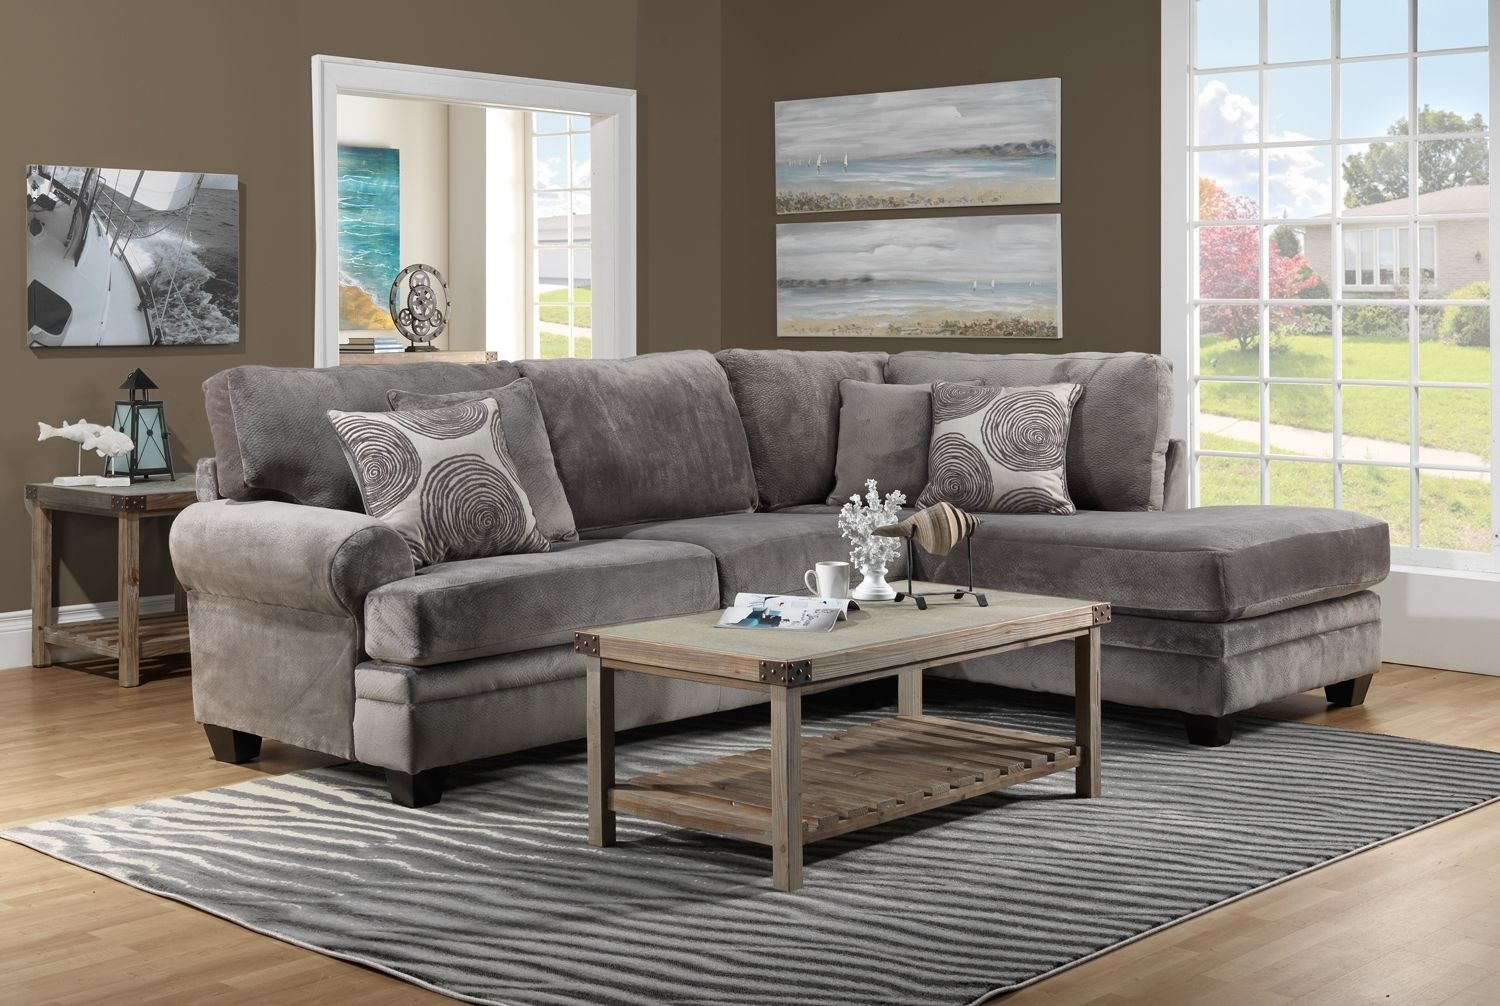 Living Room Furniture The Lana Collection Lana 2 Pc (View 10 of 10)